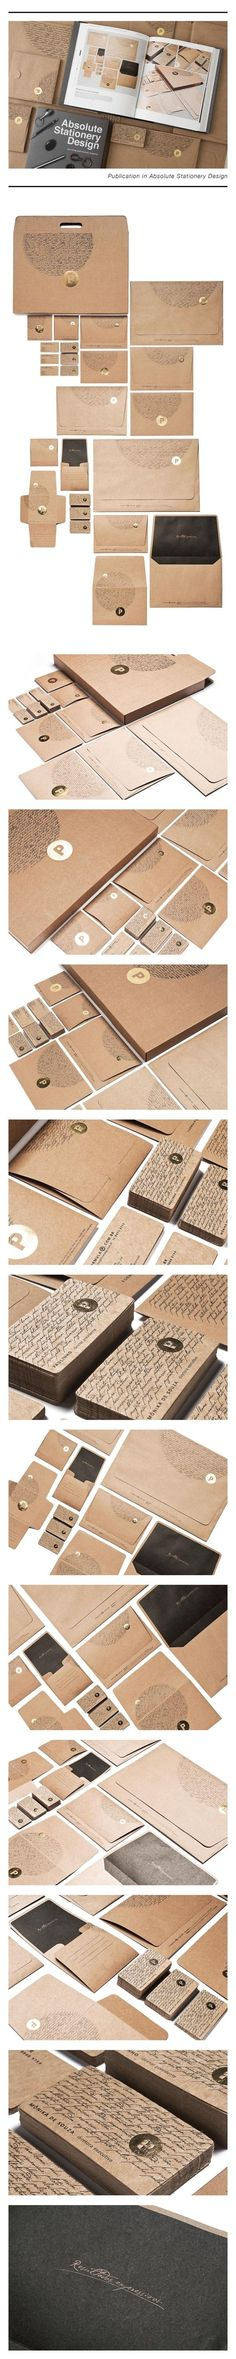 IDENTITY FÓRMULA P 2012 / 13 by Alexandre BUIATE, via Behance Great #identity #packaging #branding #marketing PD